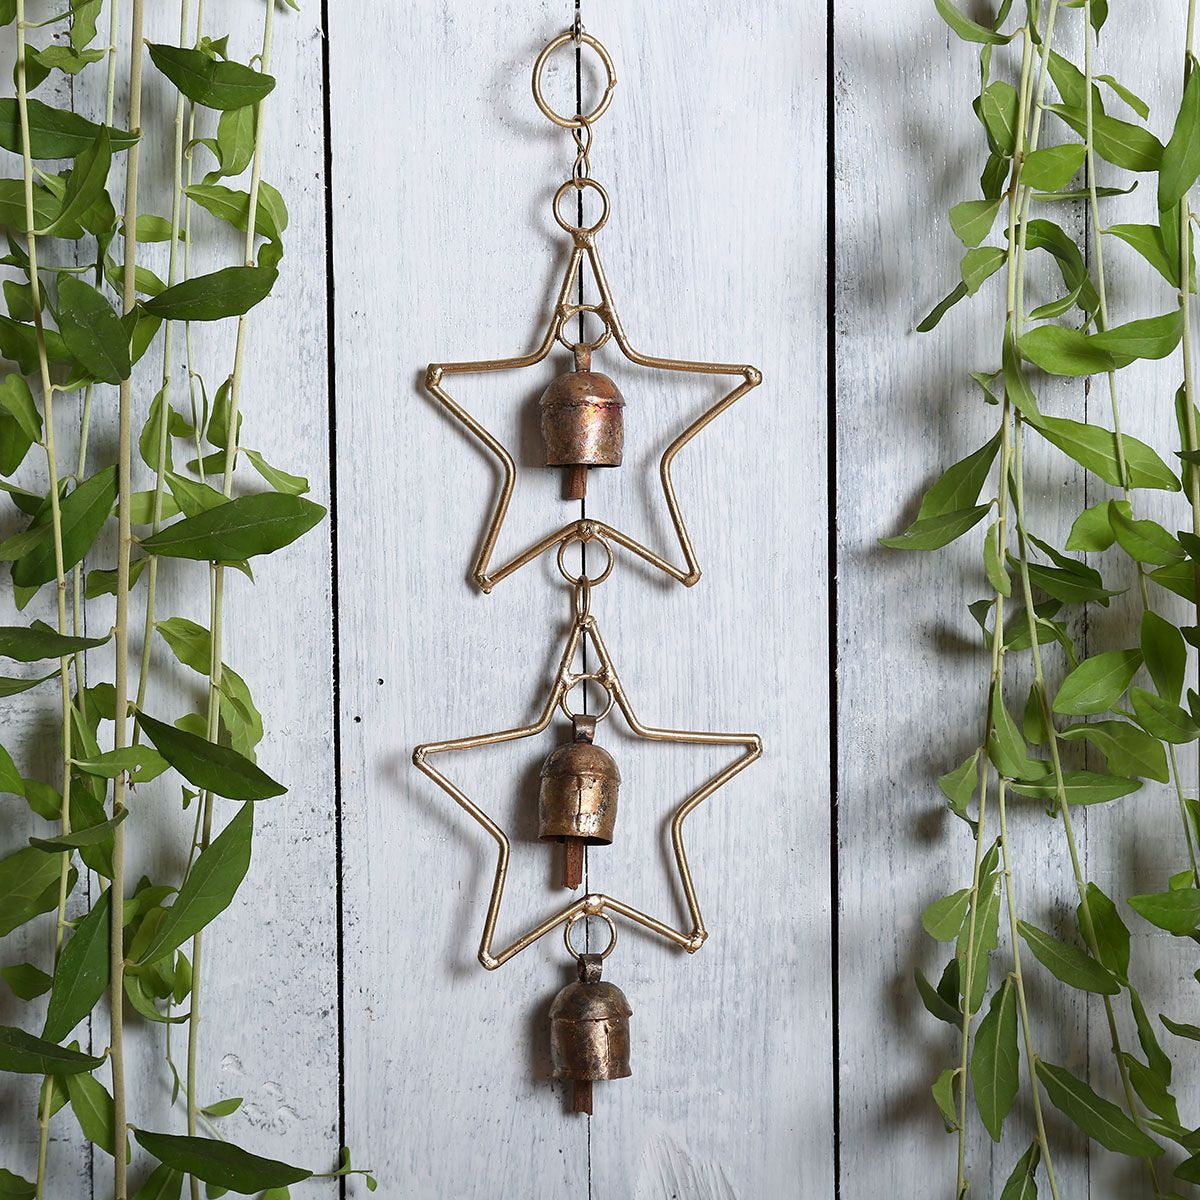 Kutch Metal Bell Wind Chimes - 3 Bell Star Design